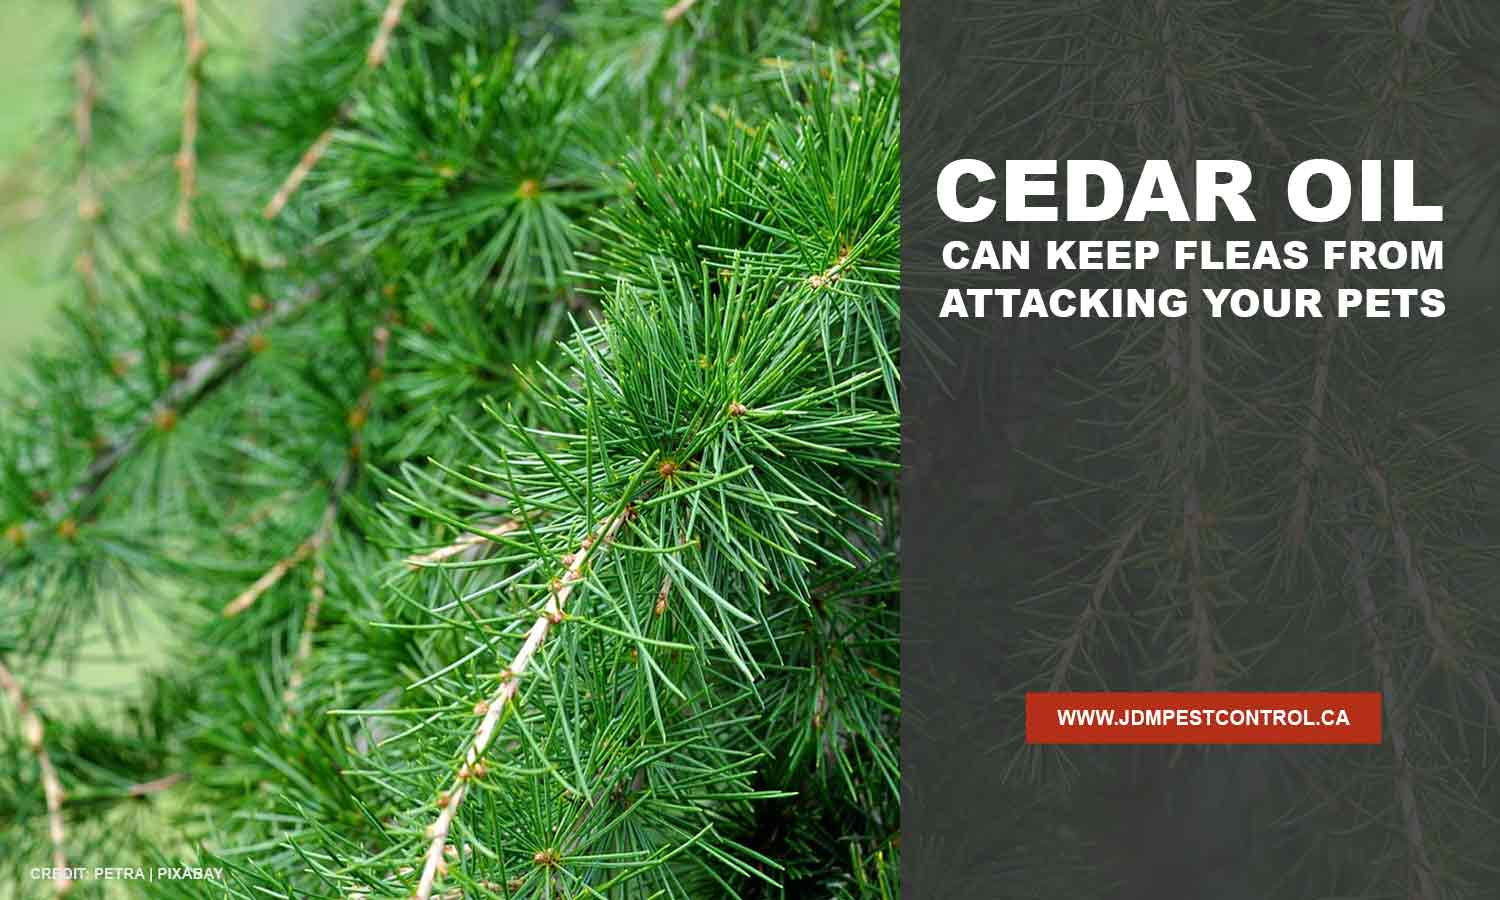 Cedar oil can keep fleas from attacking your pets